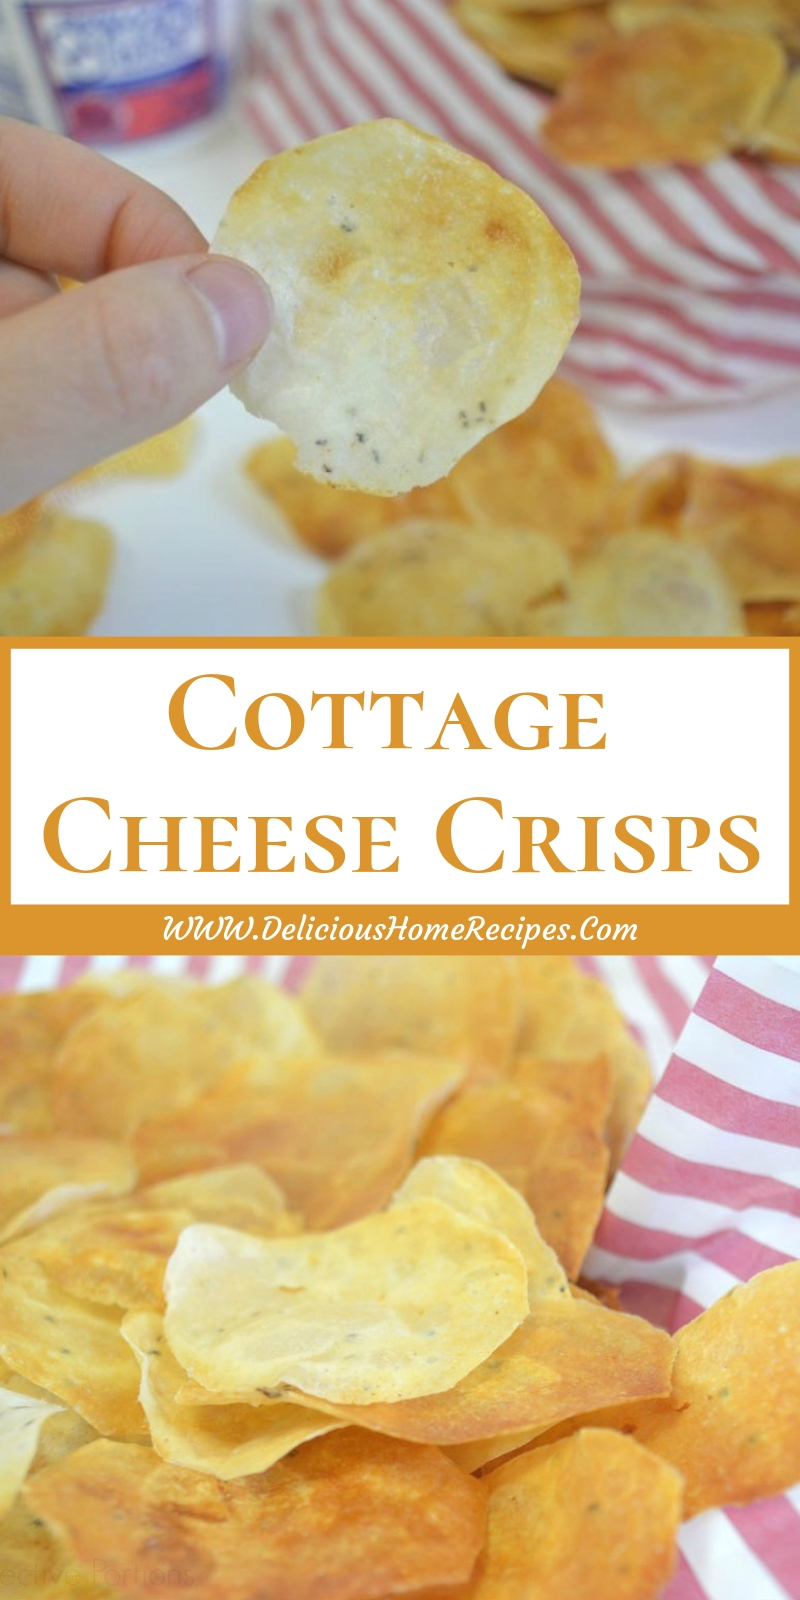 Cottage Cheese Crisps